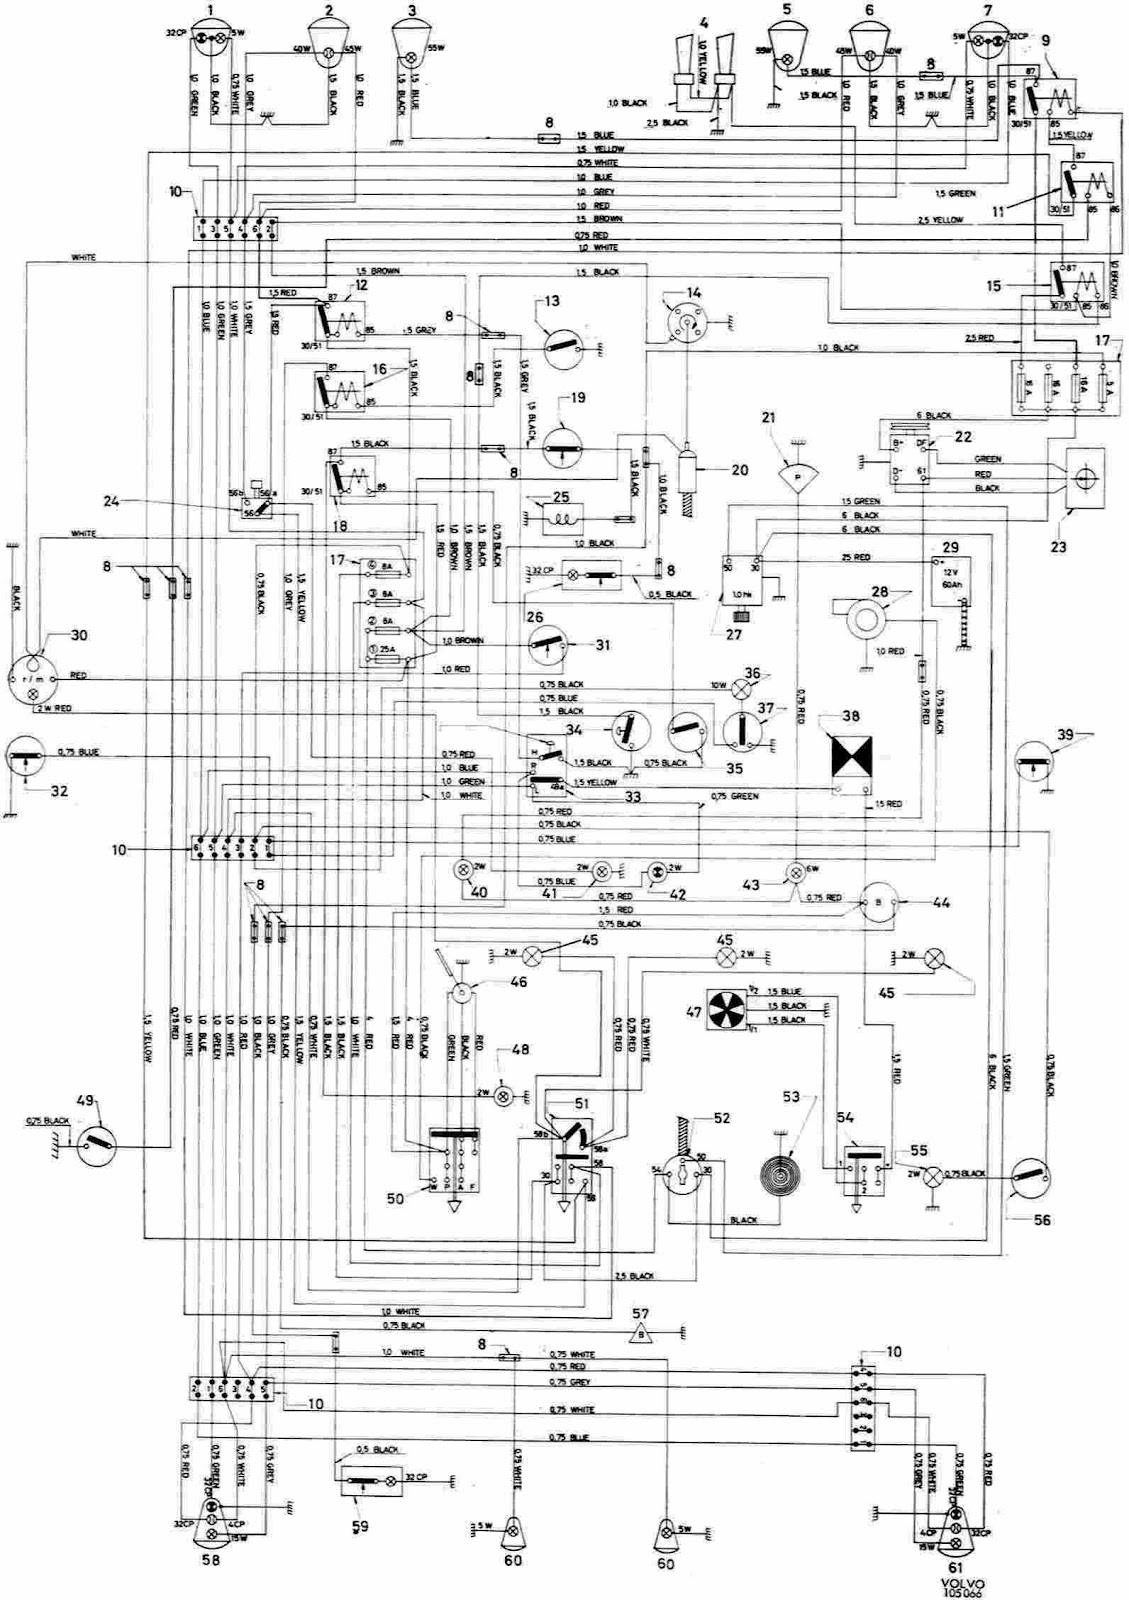 dta s40 pro wiring diagram for bt openreach master socket 5c volvo fuse best library 98 truck box speedometer